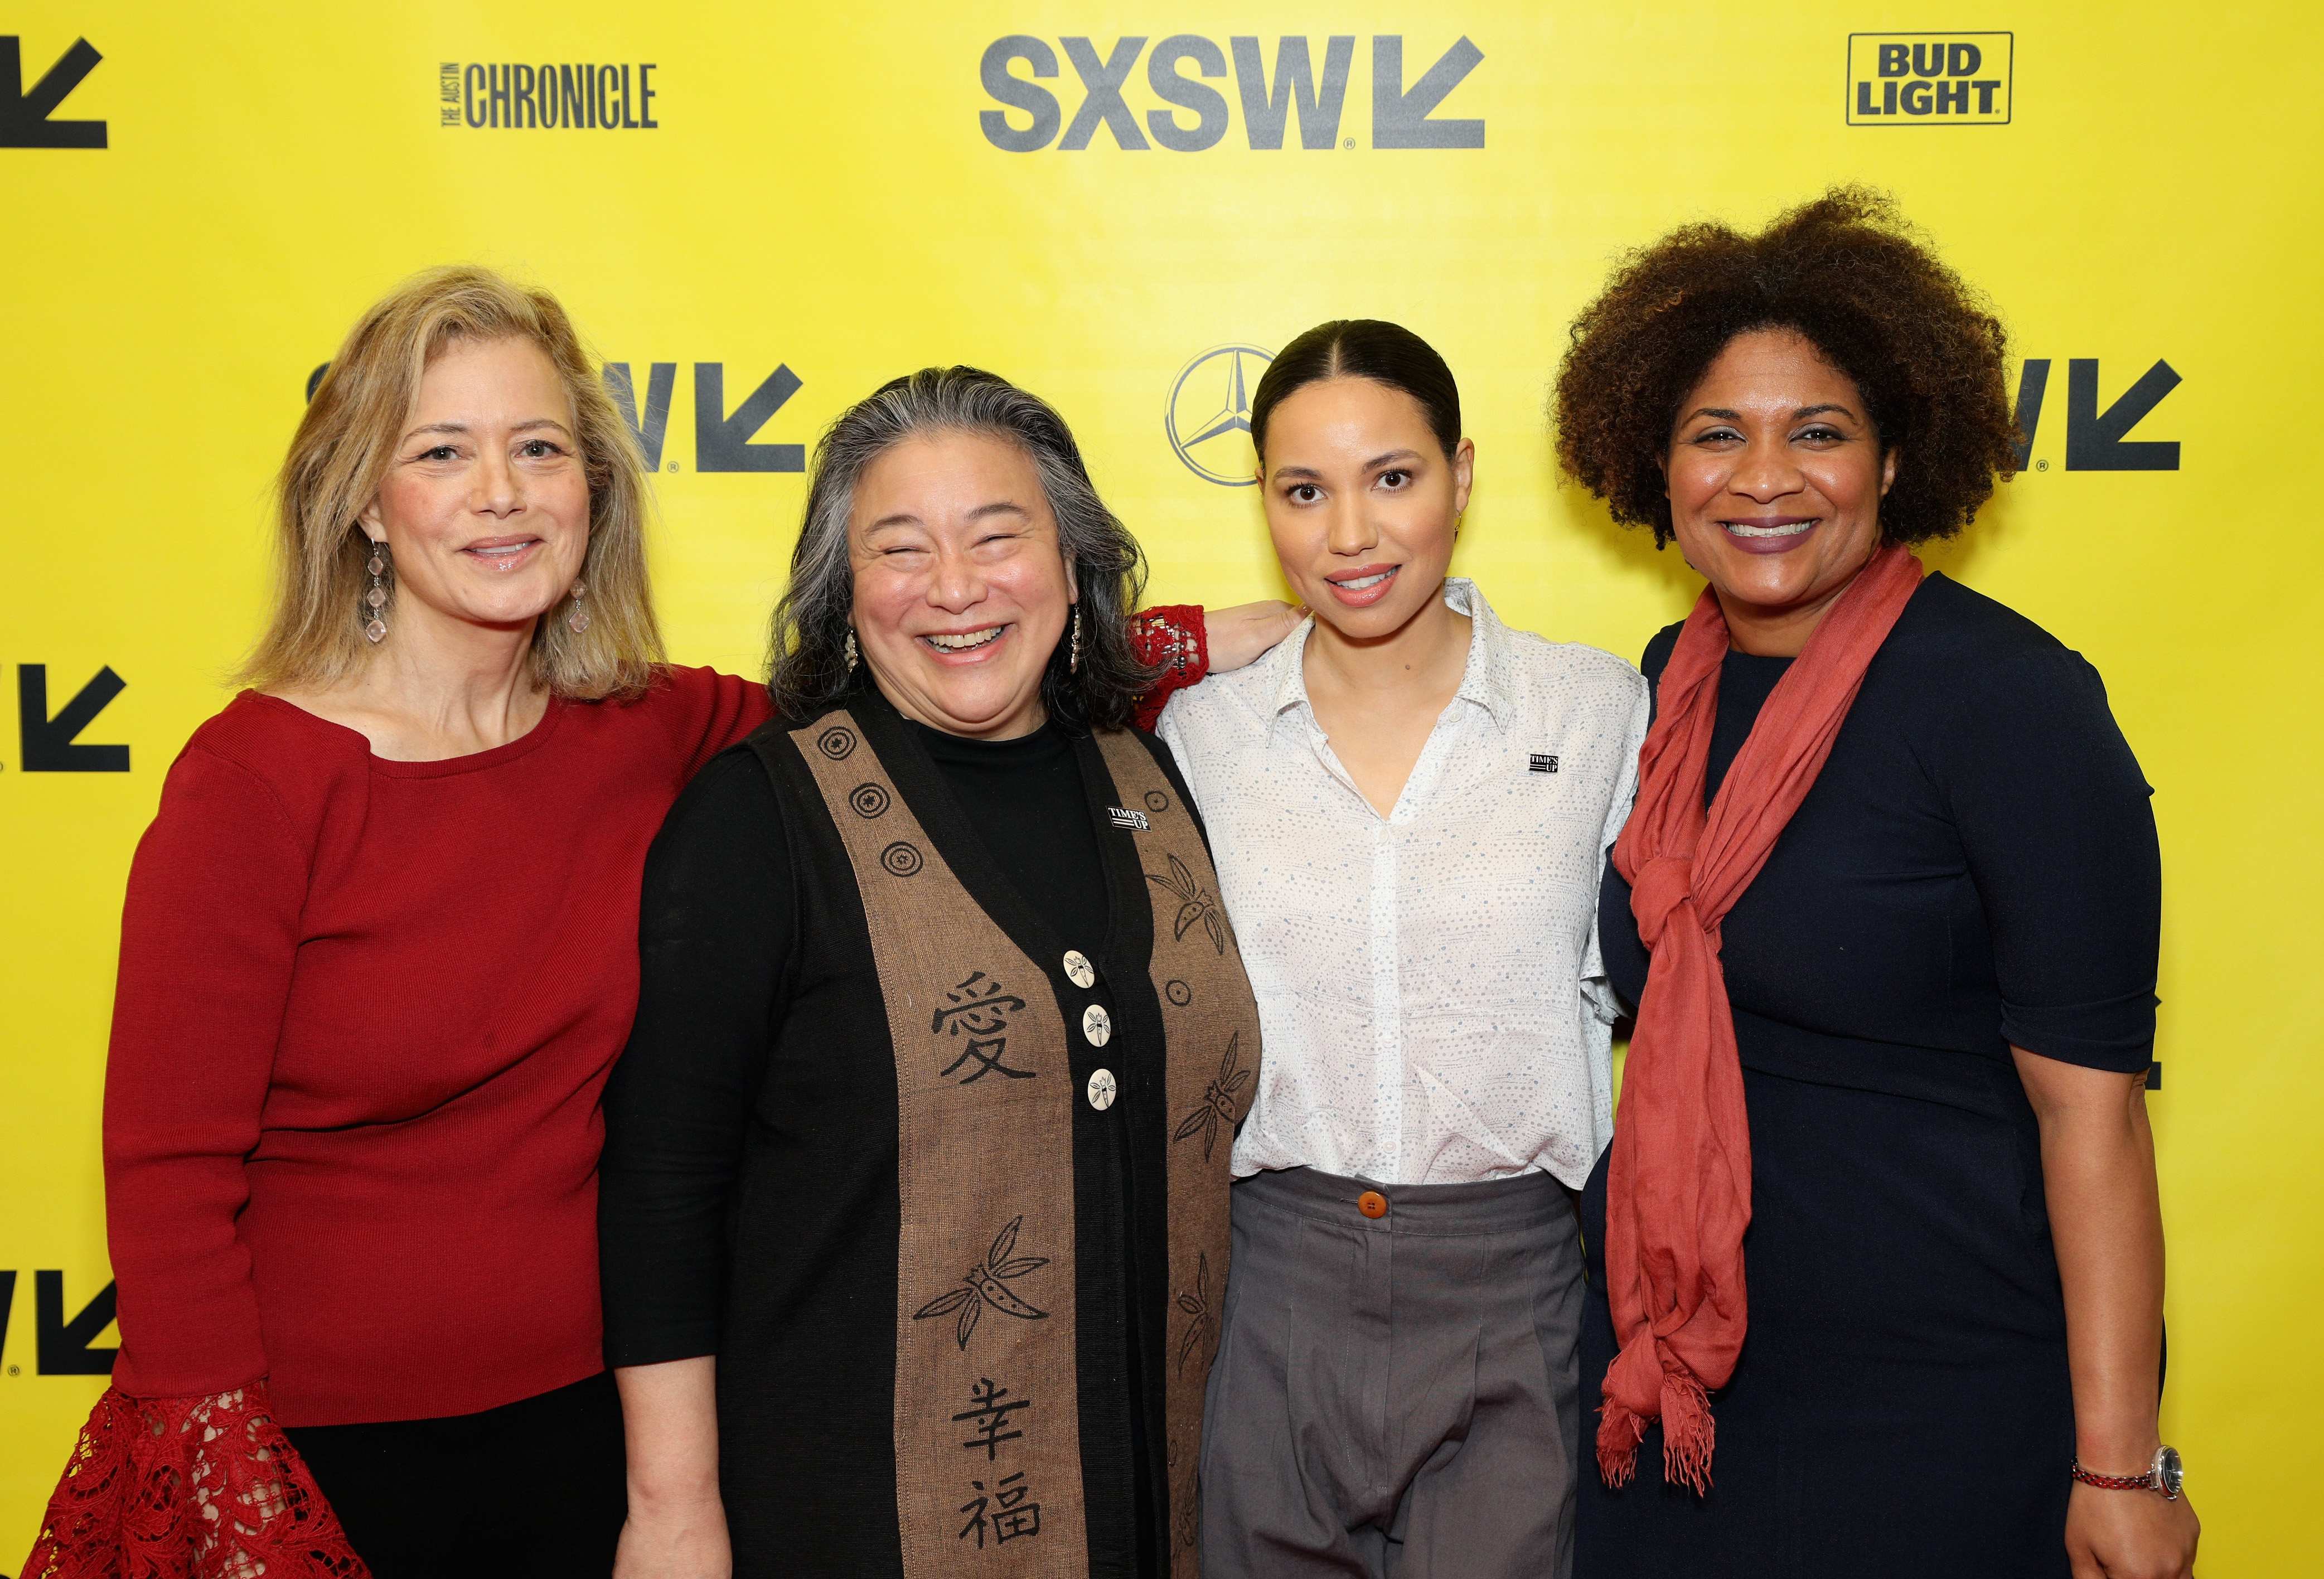 (L-R) Hilary Rosen, Tina Tchen, Jurnee Smollett-Bell and Fatima Goss Graves attend Time's Up! Shifting the Imbalance of Power during SXSW at Austin Convention Center on March 11, 2018 in Austin, Texas. (Photo by Mike Jordan/Getty Images for SXSW)